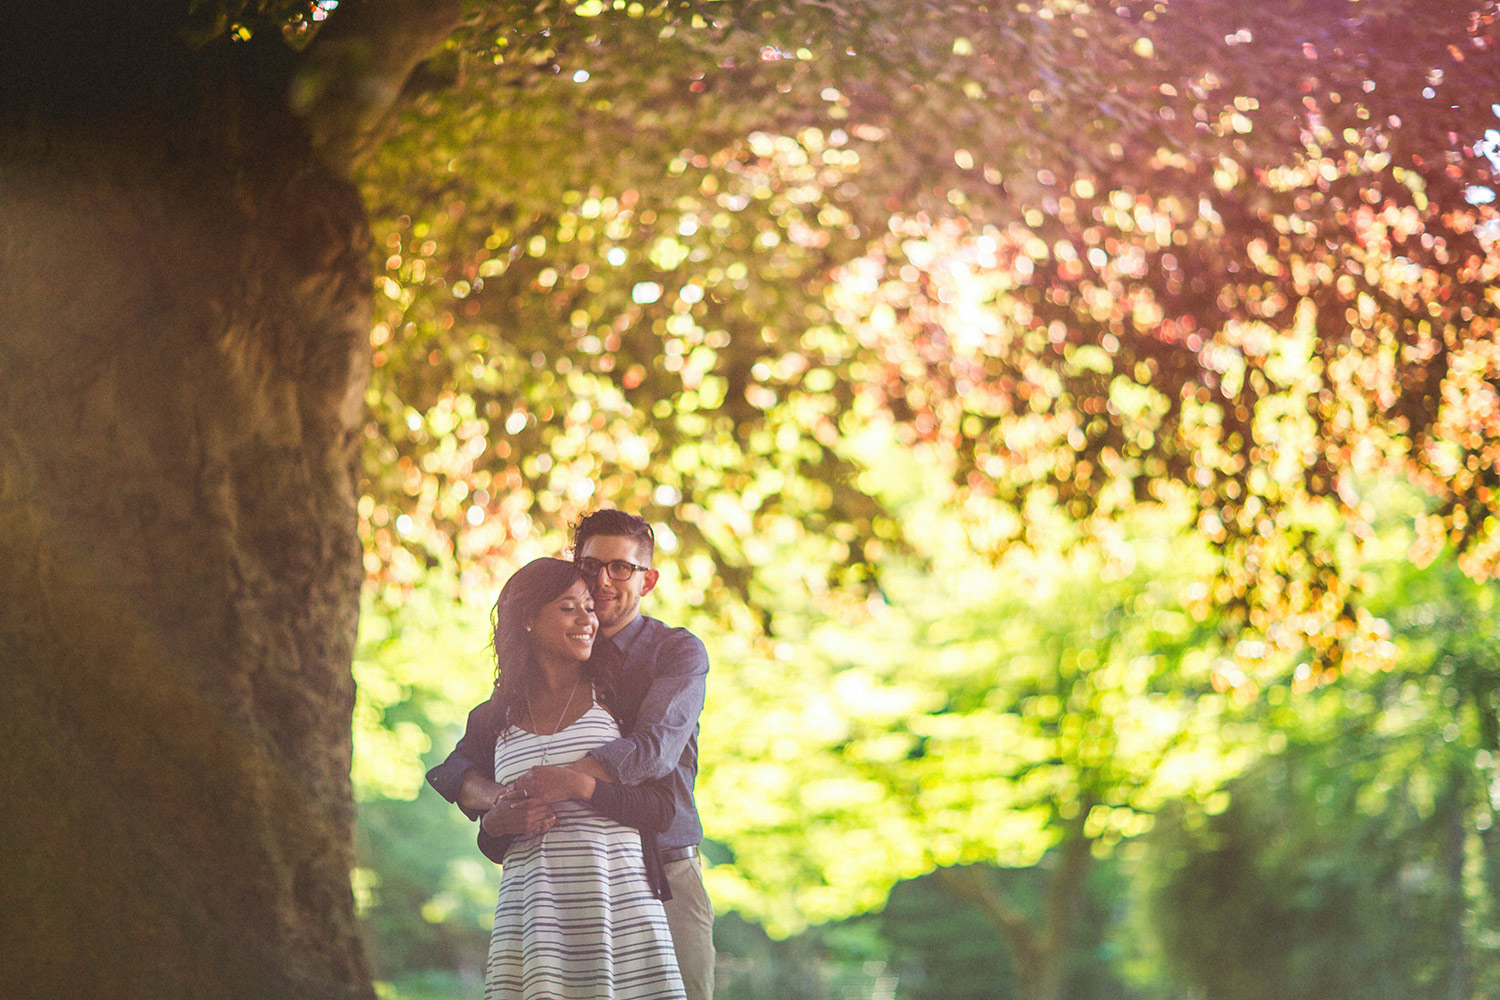 3 Prospect Park Creative engagement session.JPG